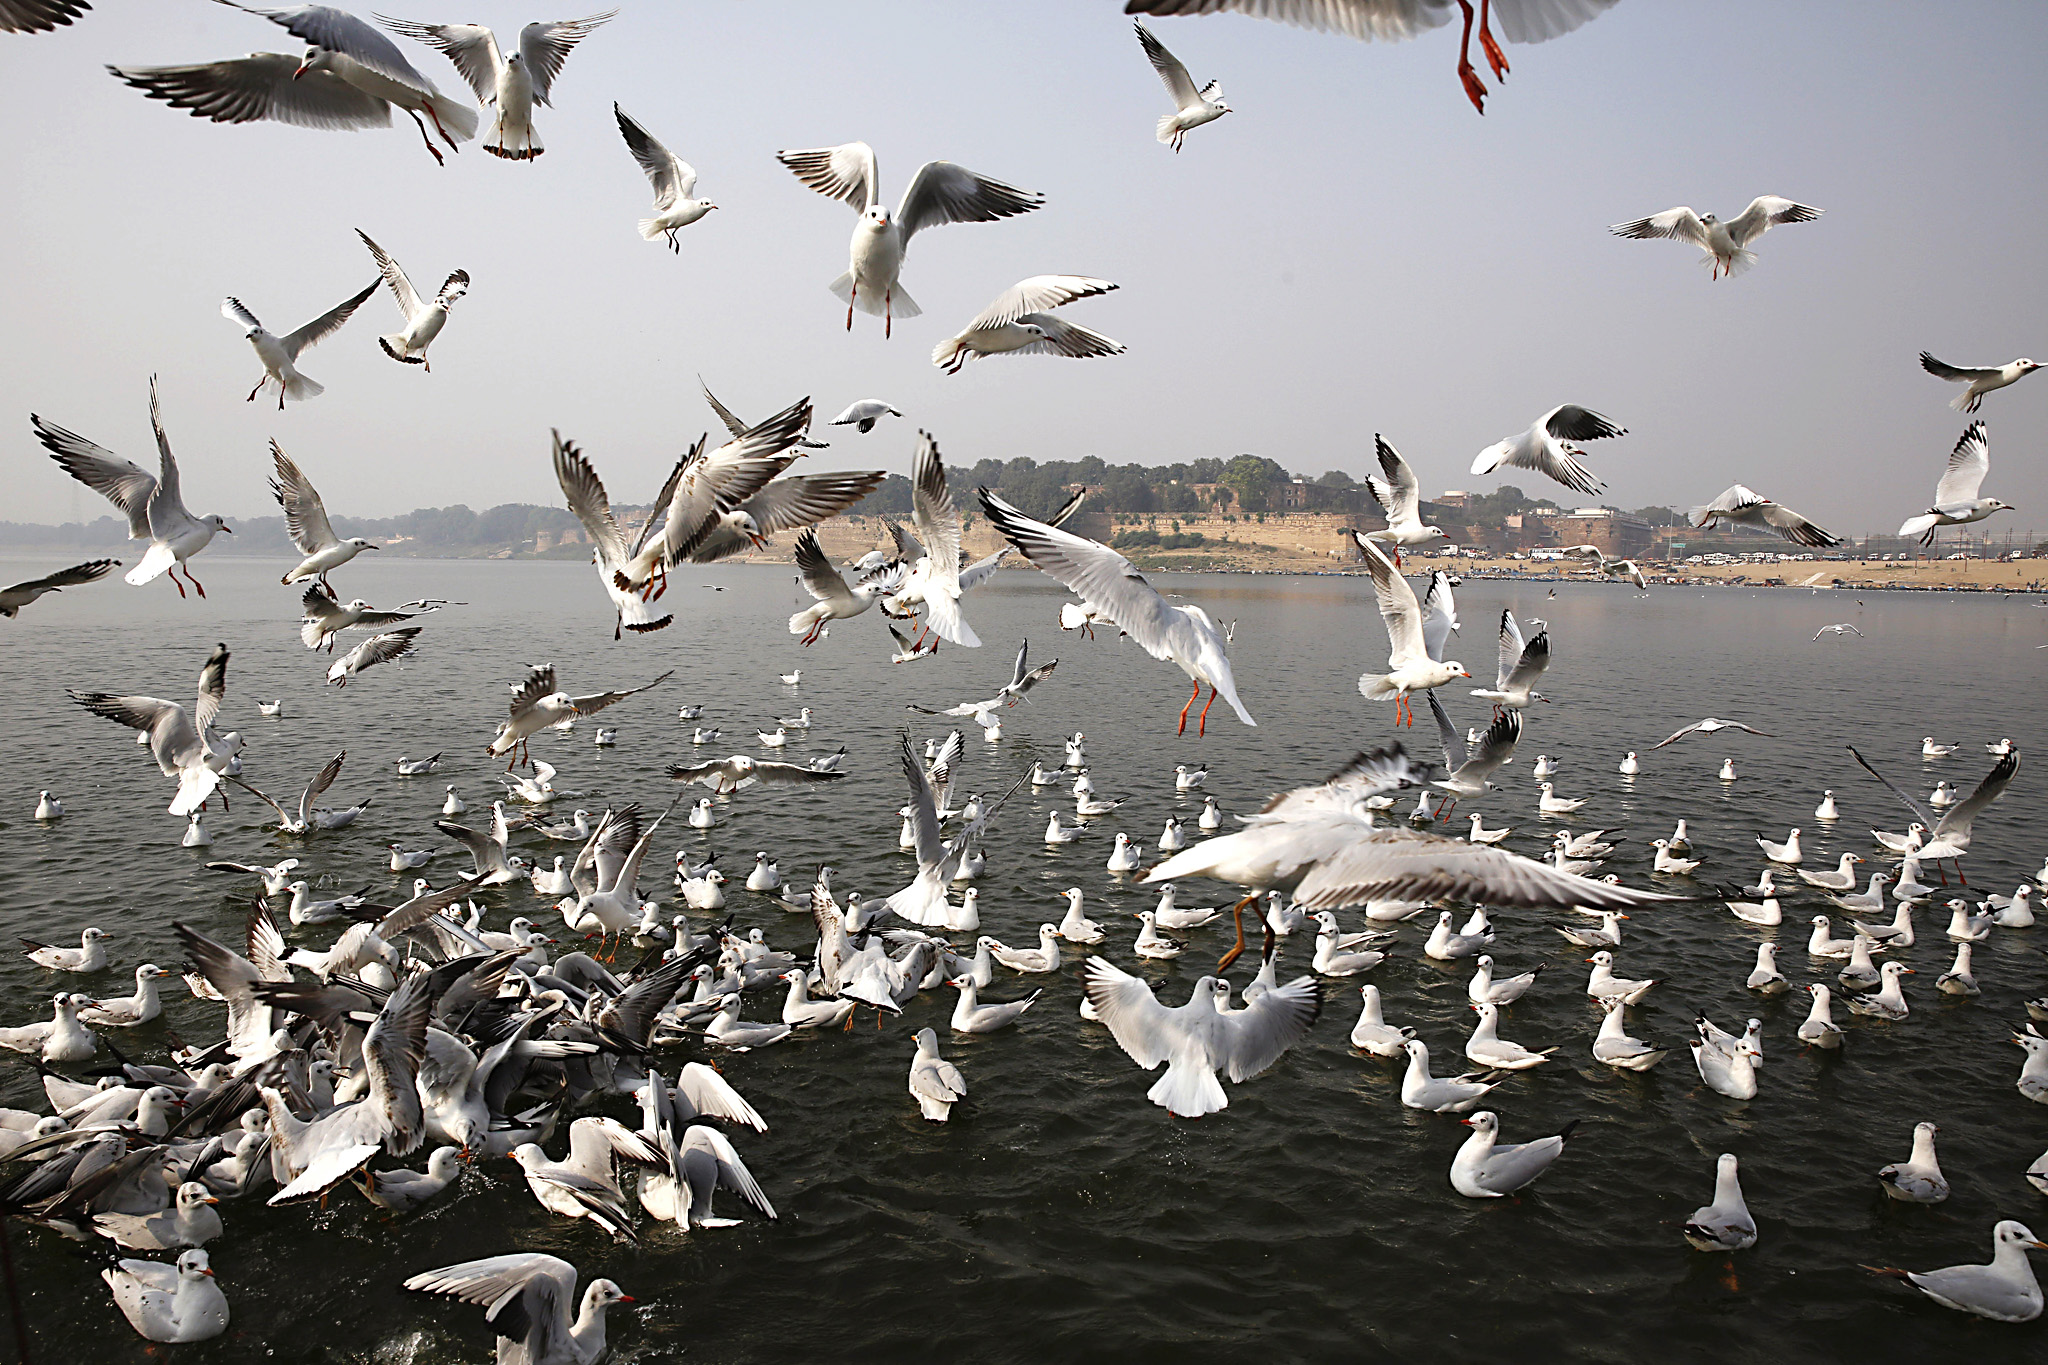 Siberian gulls hover over Sangam, the confluence of the Ganges and Yamuna Rivers, in Allahabad, India, on Thursday, Dec. 17, 2015. The gulls travel thousands of miles to India during the Siberian winter in October and return home in March. (AP Photo/Rajesh Kumar Singh)